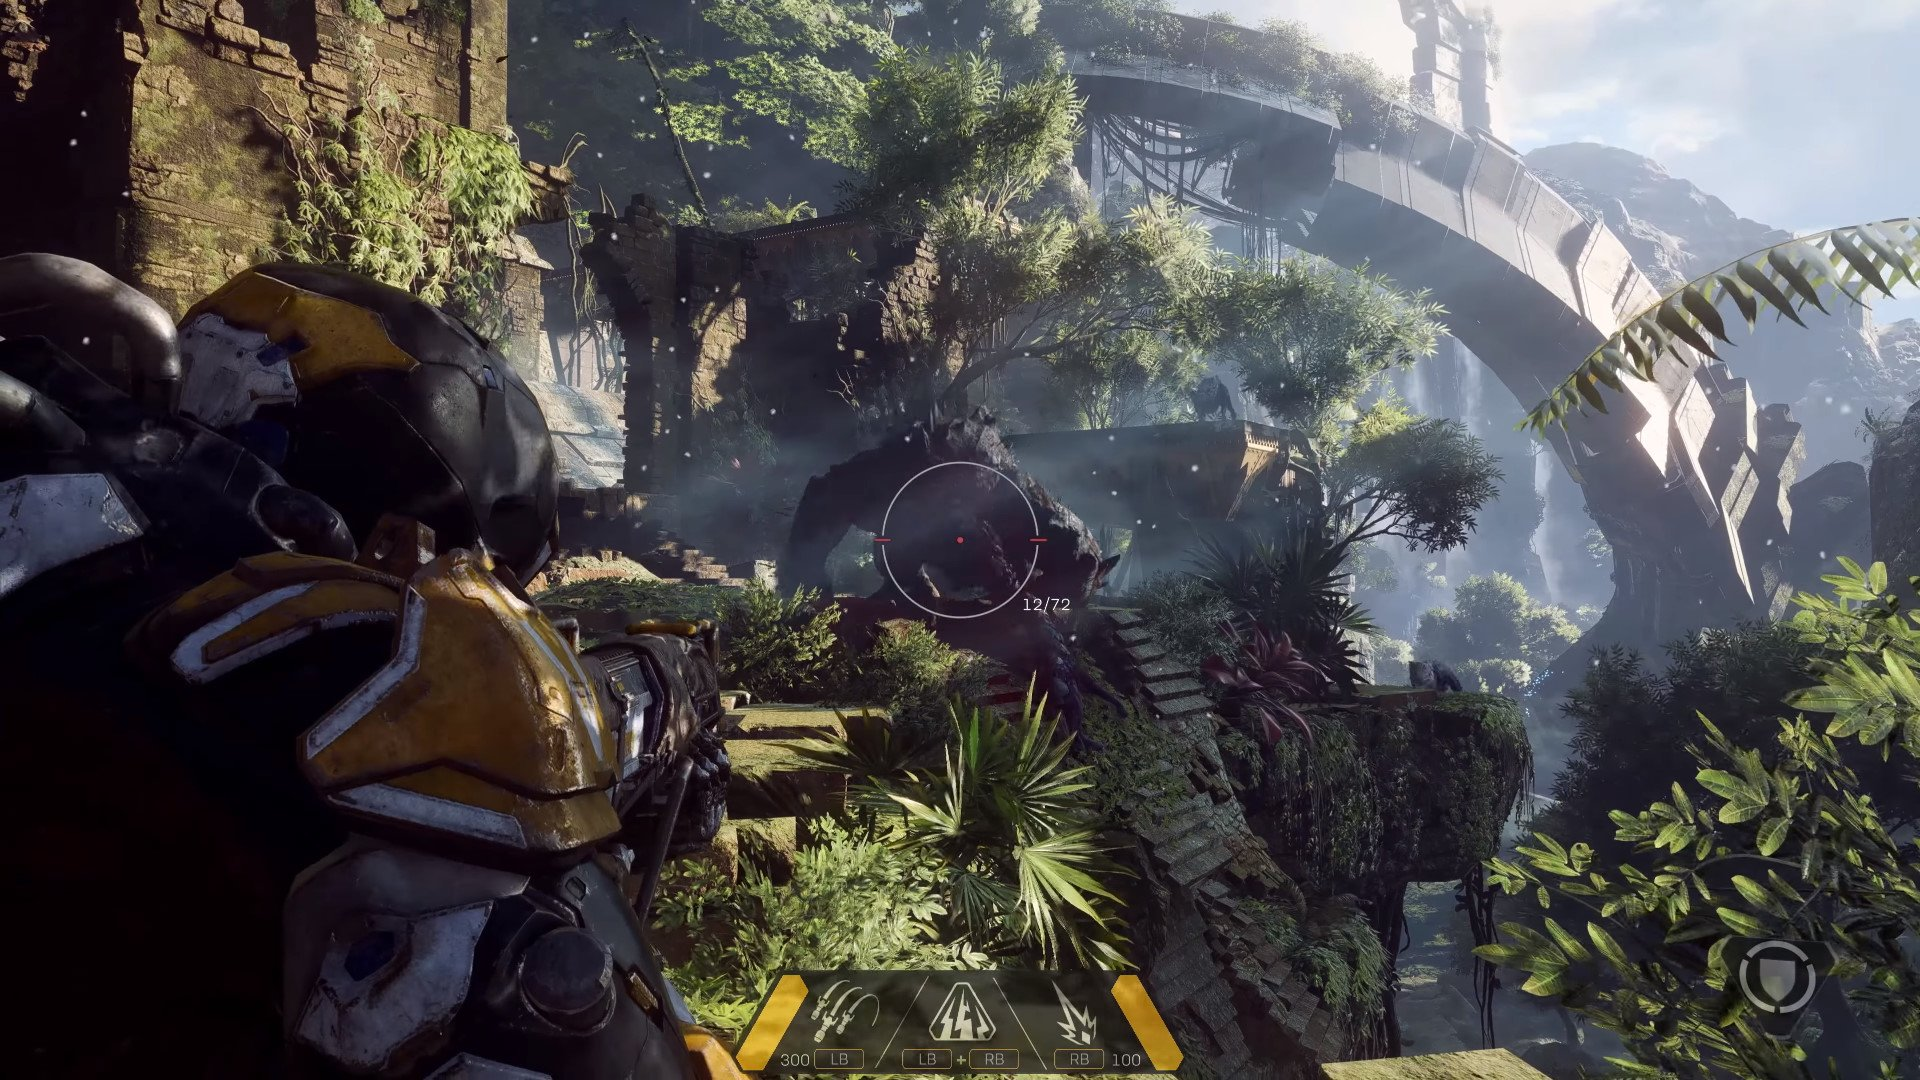 How to get experience and level up quickly in Anthem